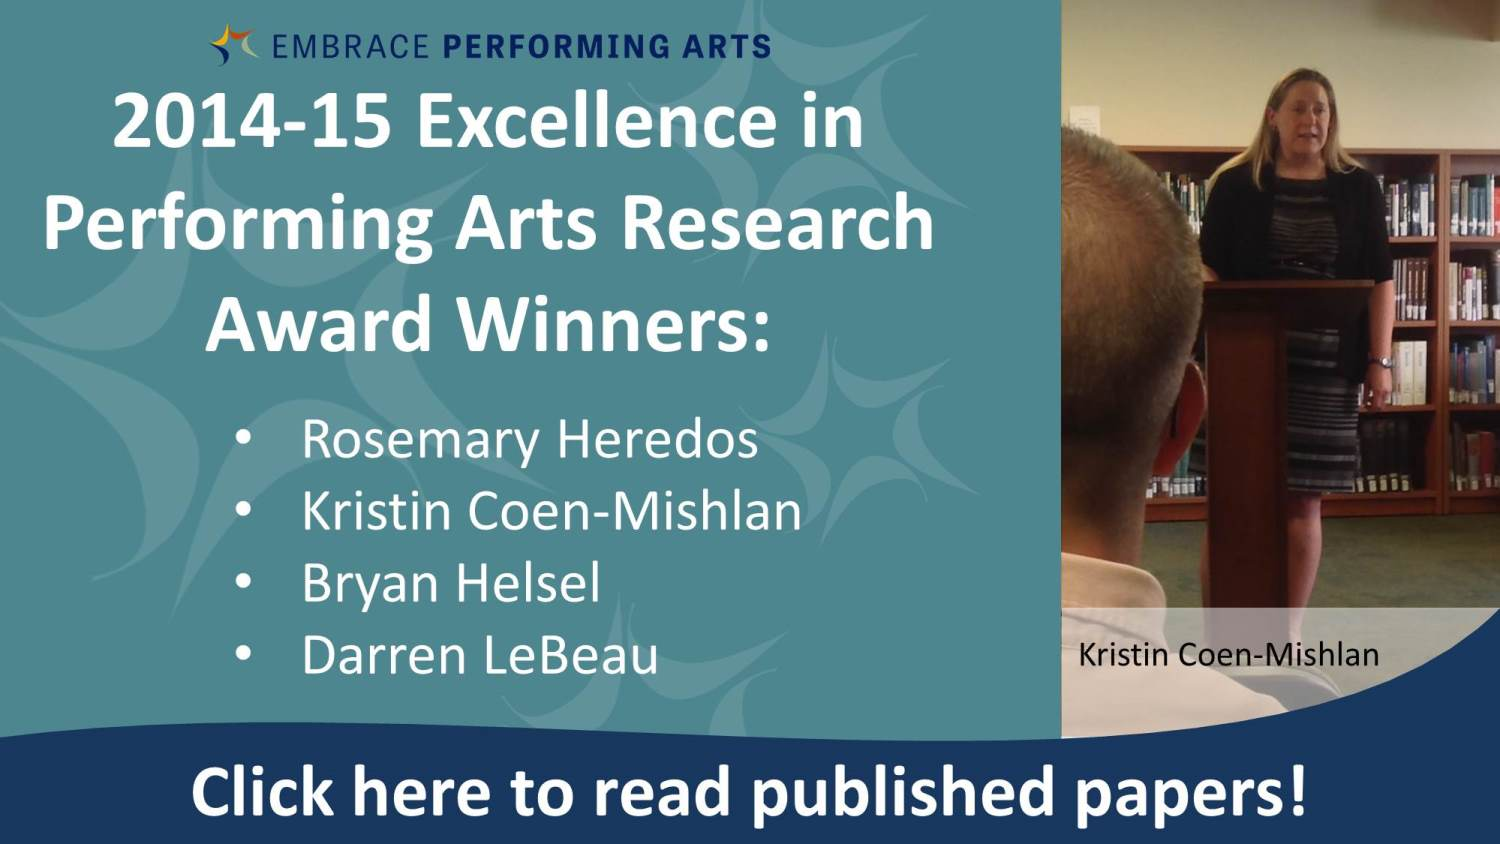 Show more about 2014-2015 Excellence in Performing Arts Research Award winners announced!